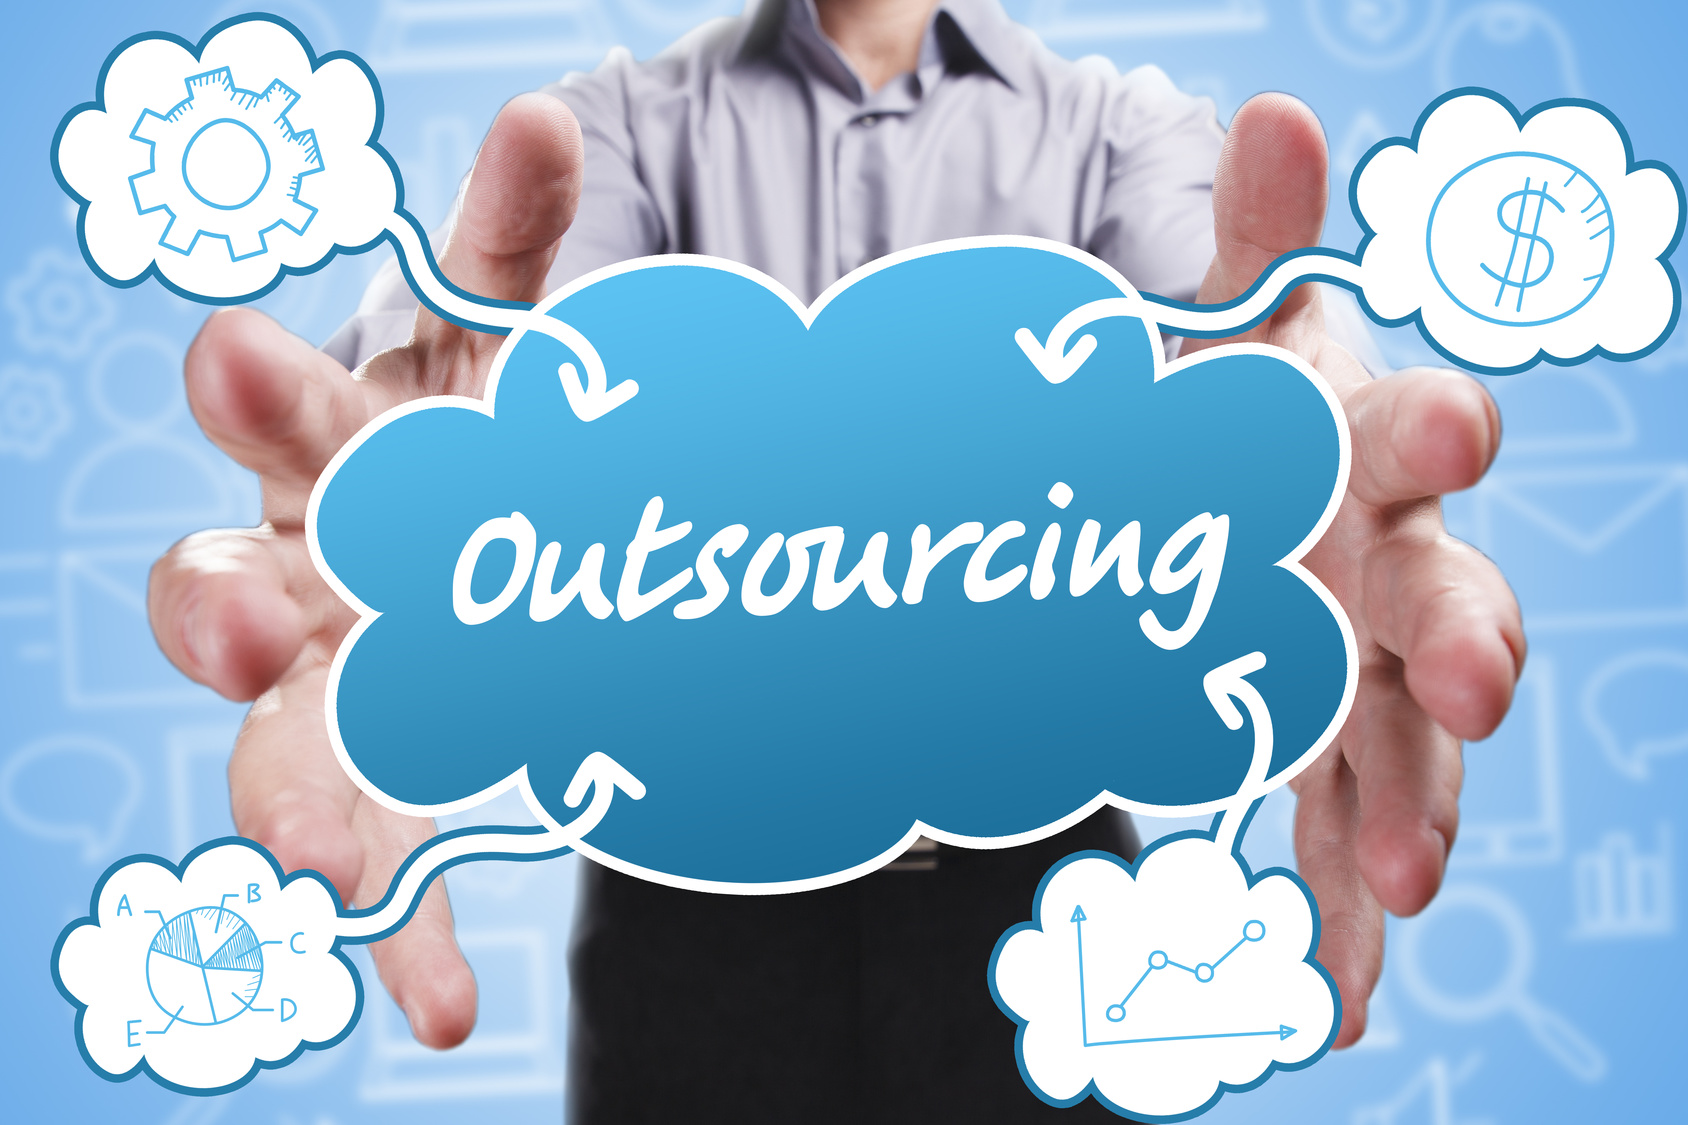 Outsourcing - A Solution or a Problem?